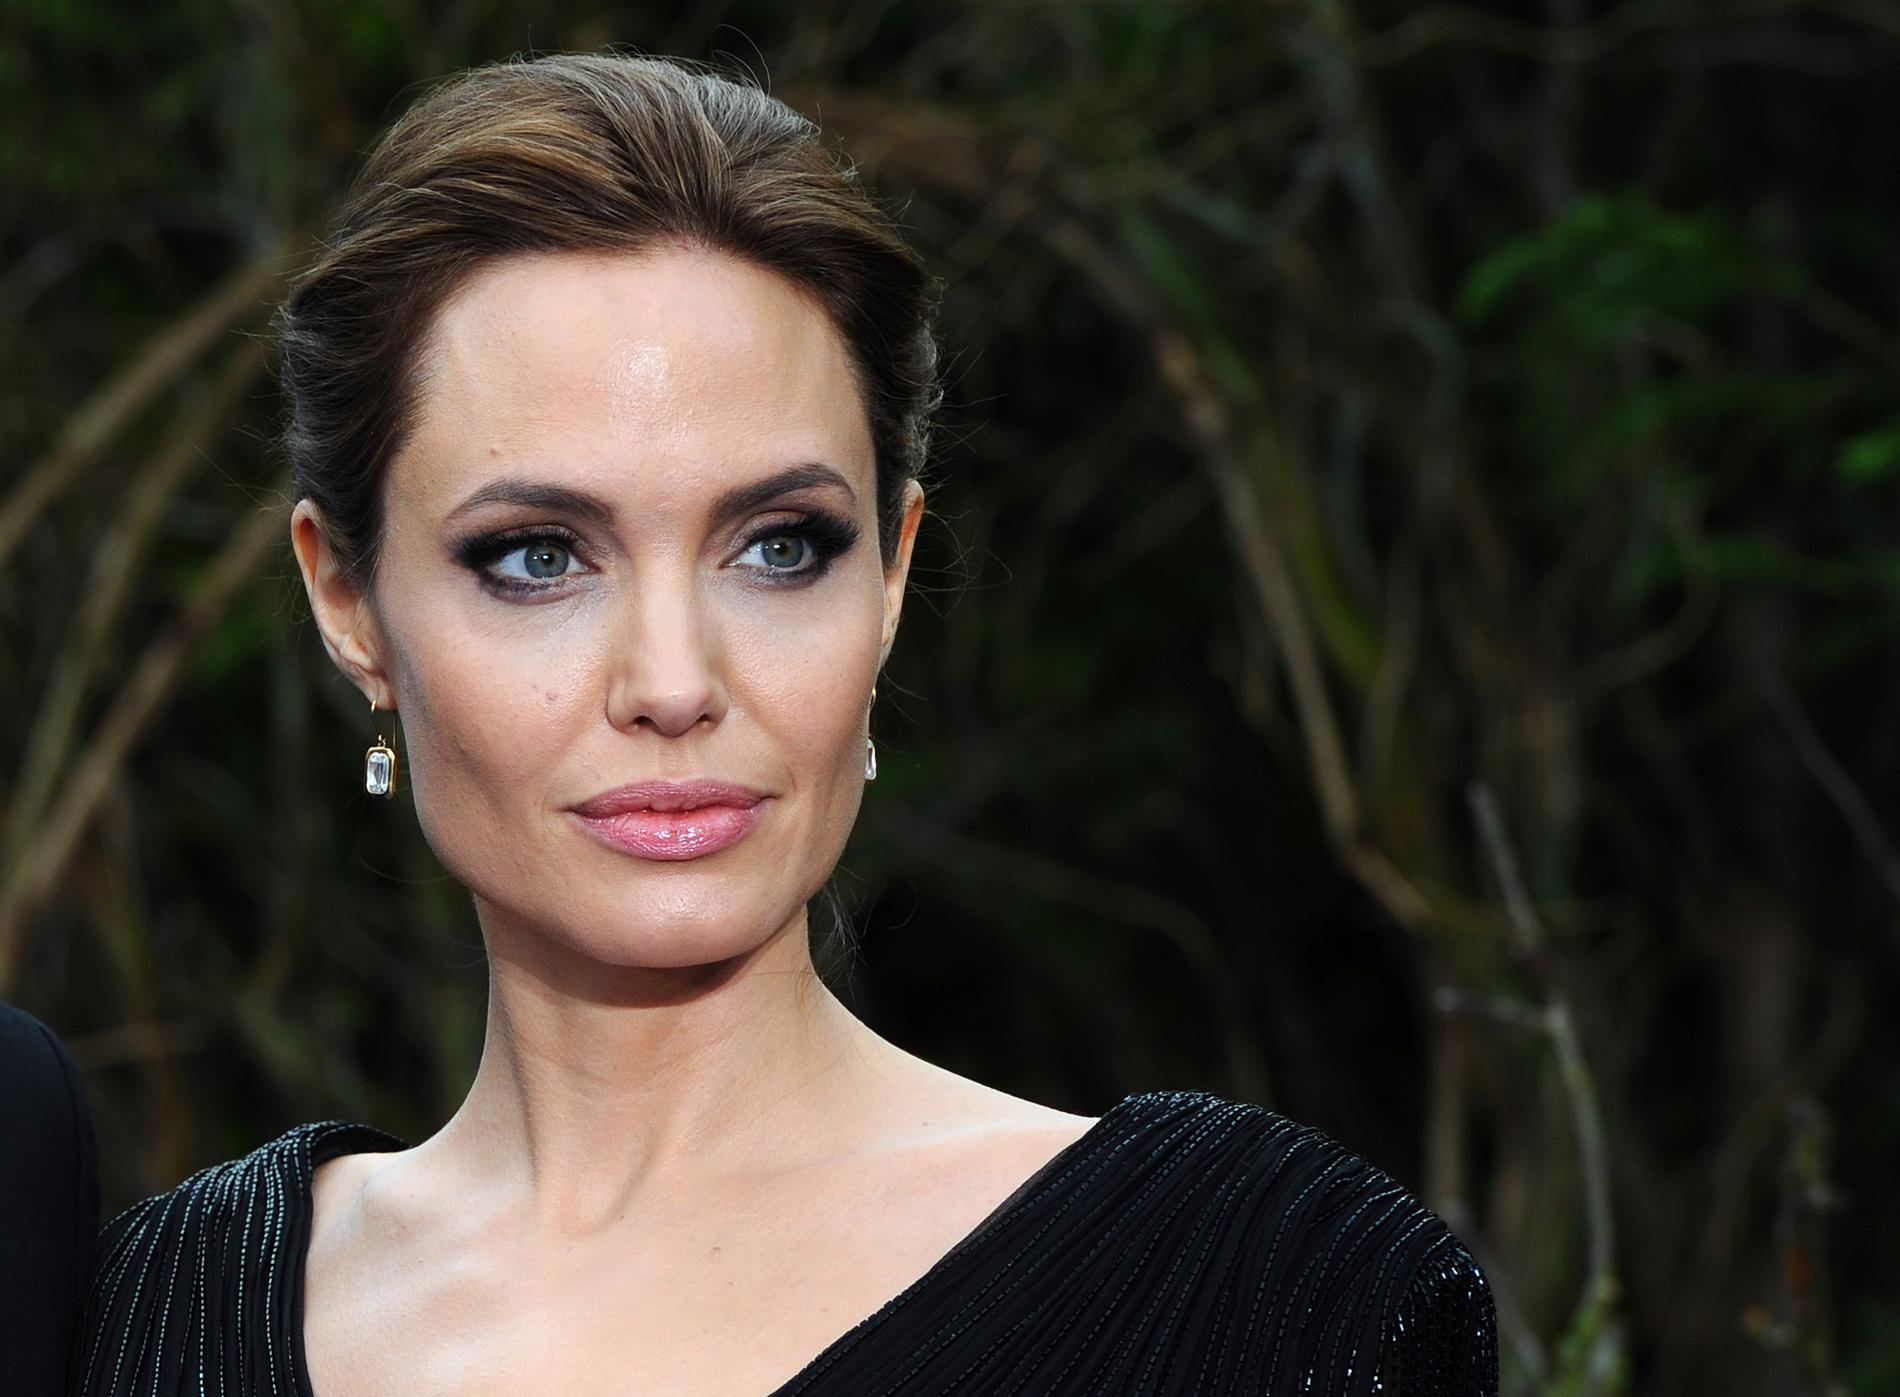 Angelina Jolie Cyborg 2 1993 these celebrities are from a royal family - soolide